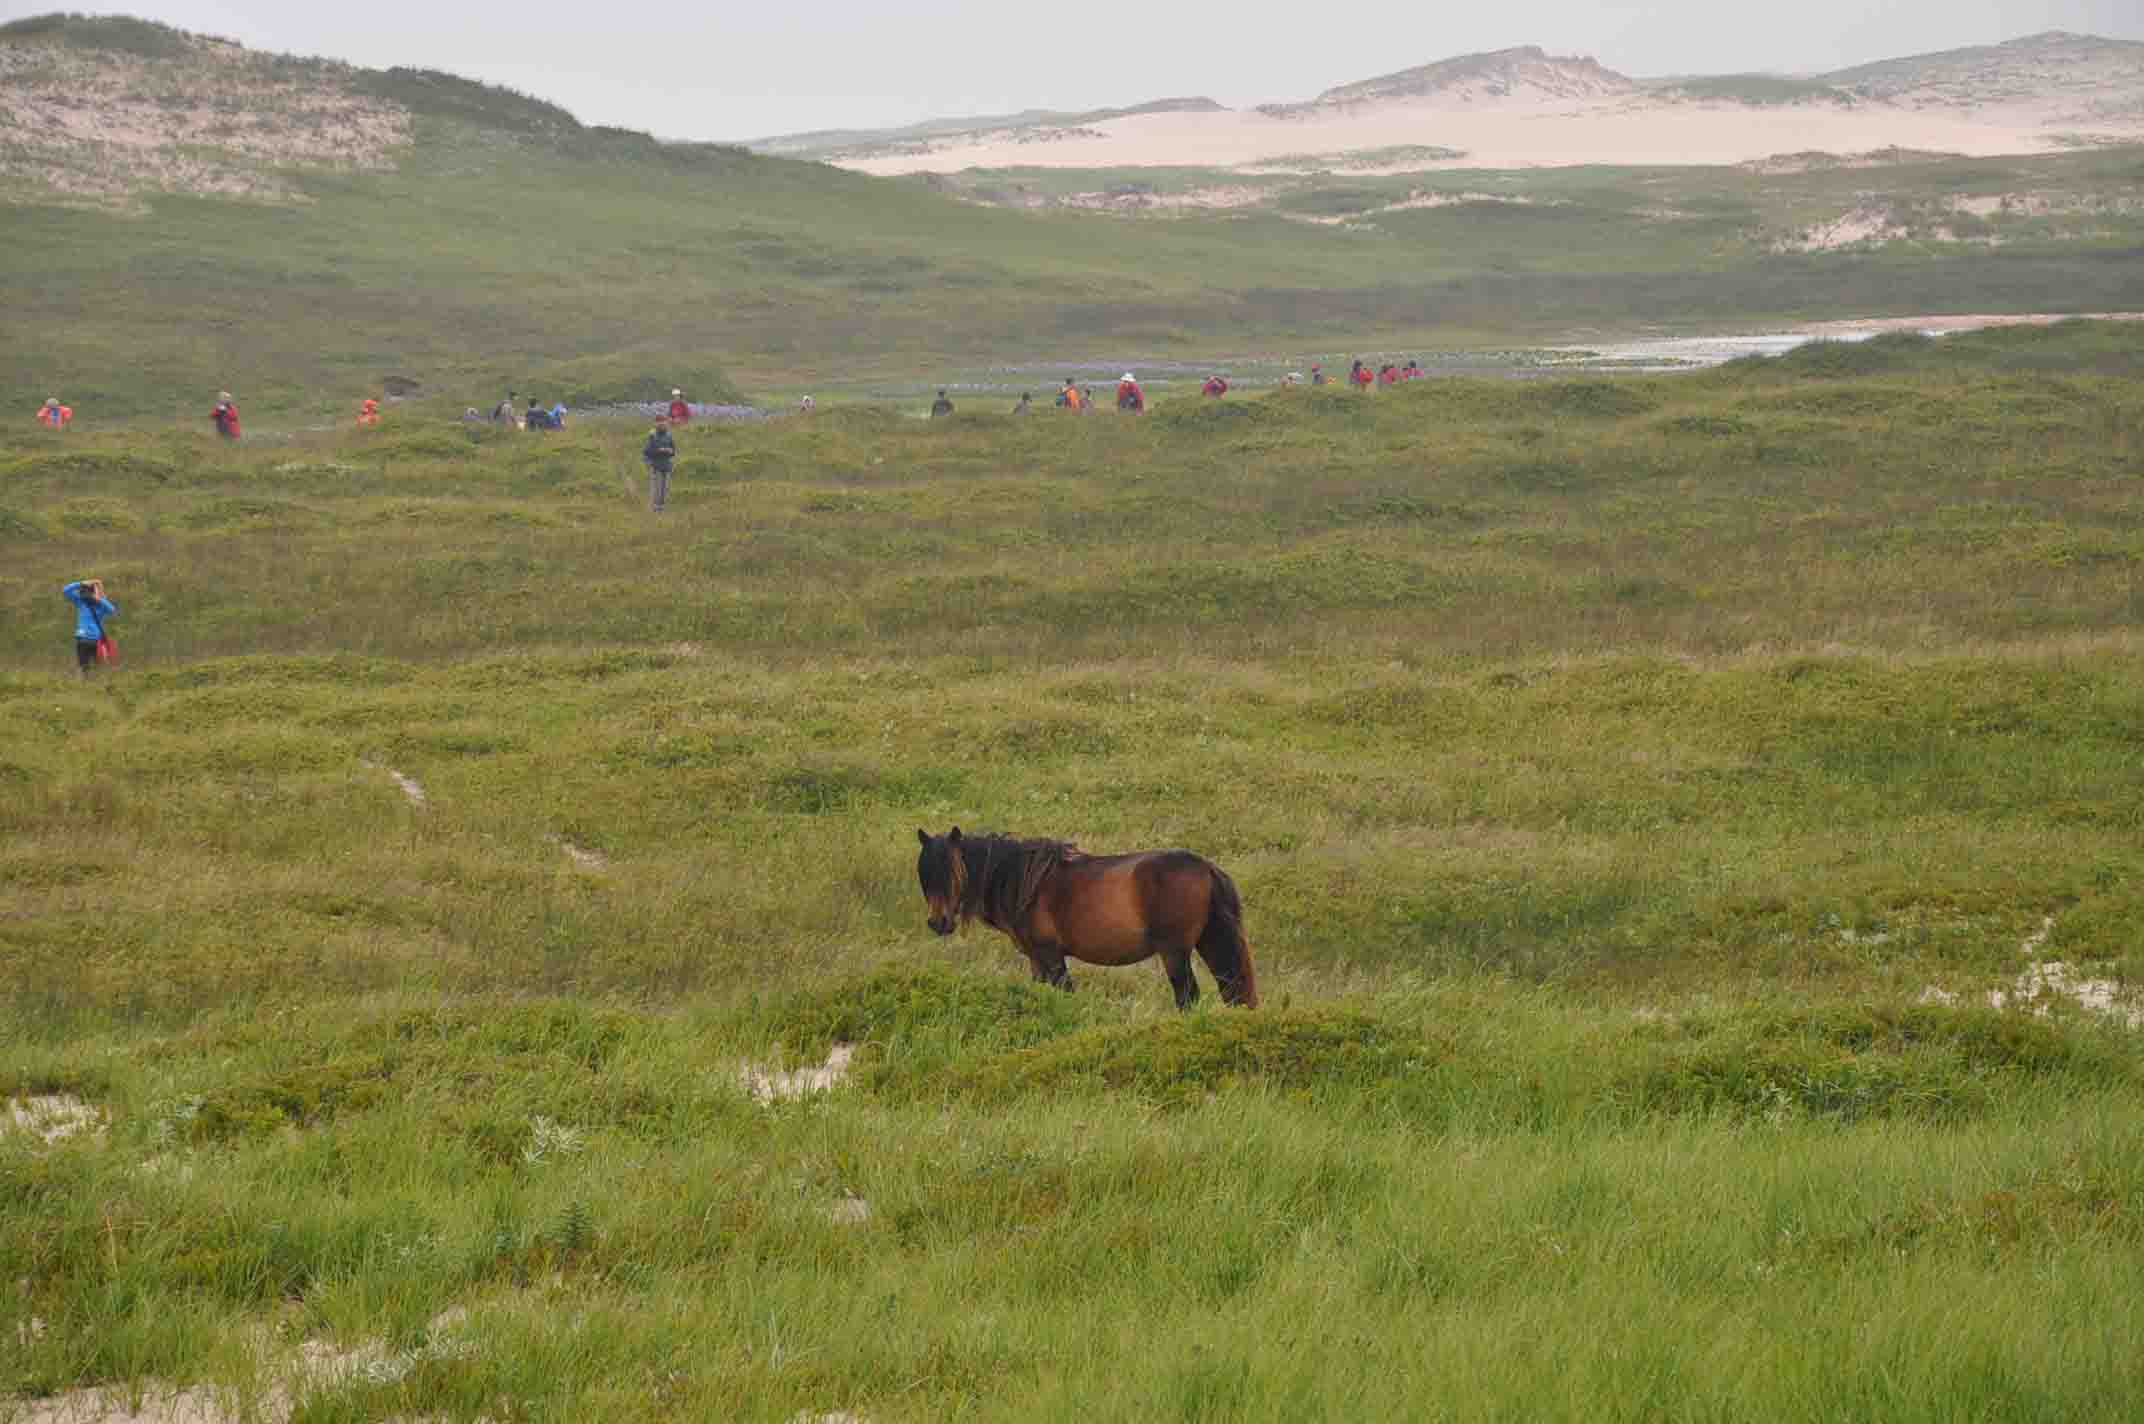 Travel on a family vacation to Sable Island and internationally renowned golf courses along Canada's East Coast with One Ocean Expeditions on small expedition cruise ships. Image: Jennifer Harnden